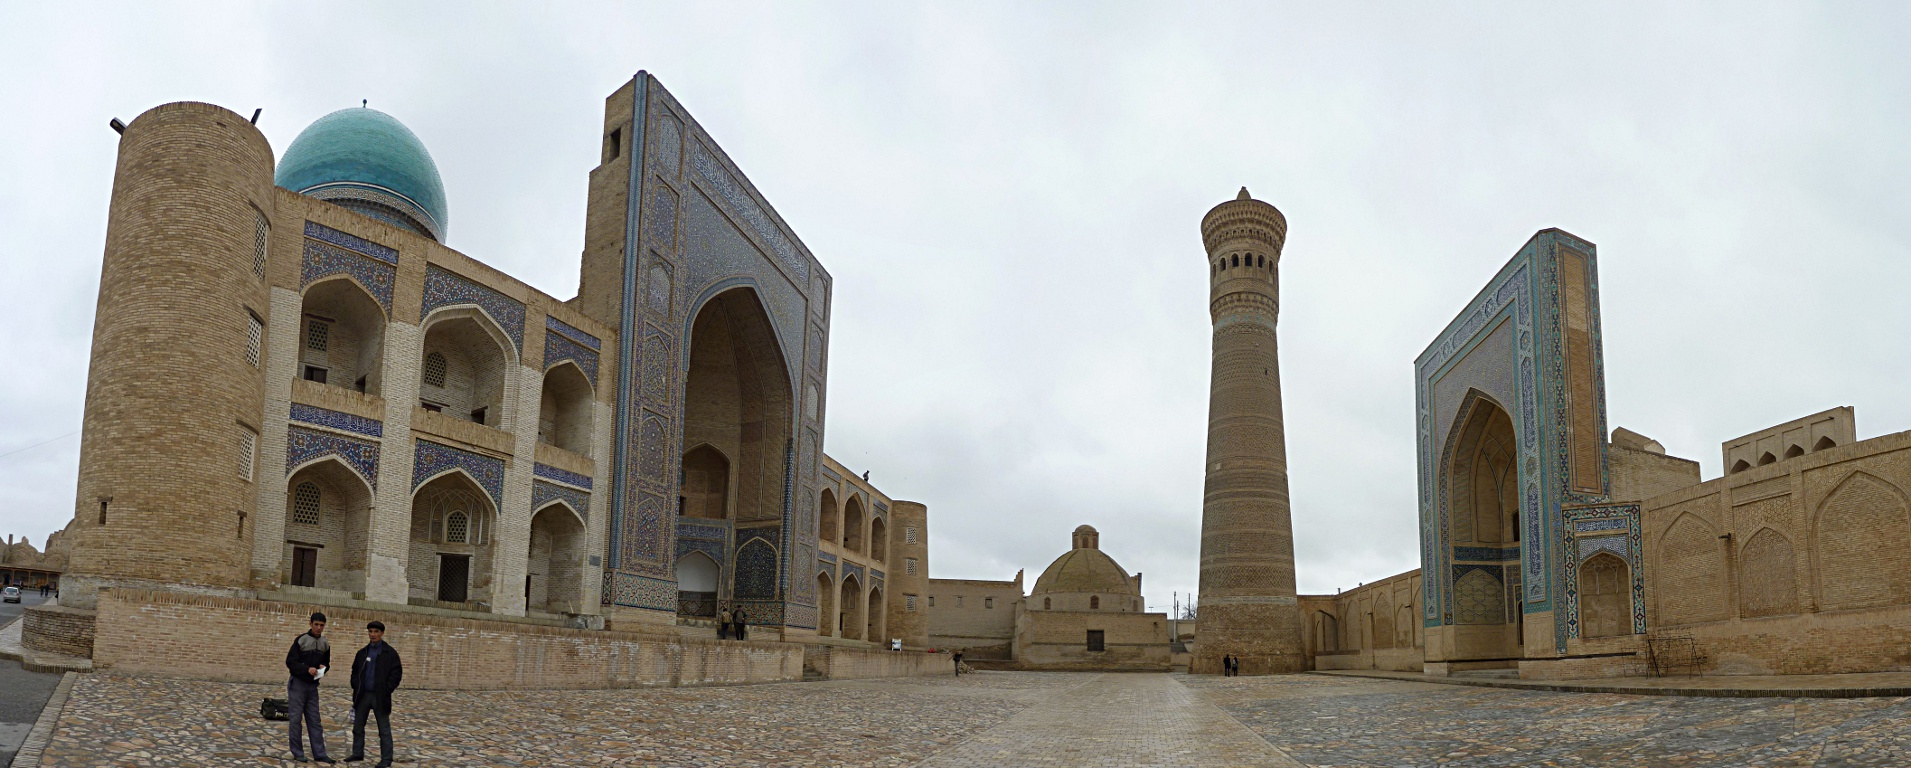 bukhara modern babylon experiences and observations